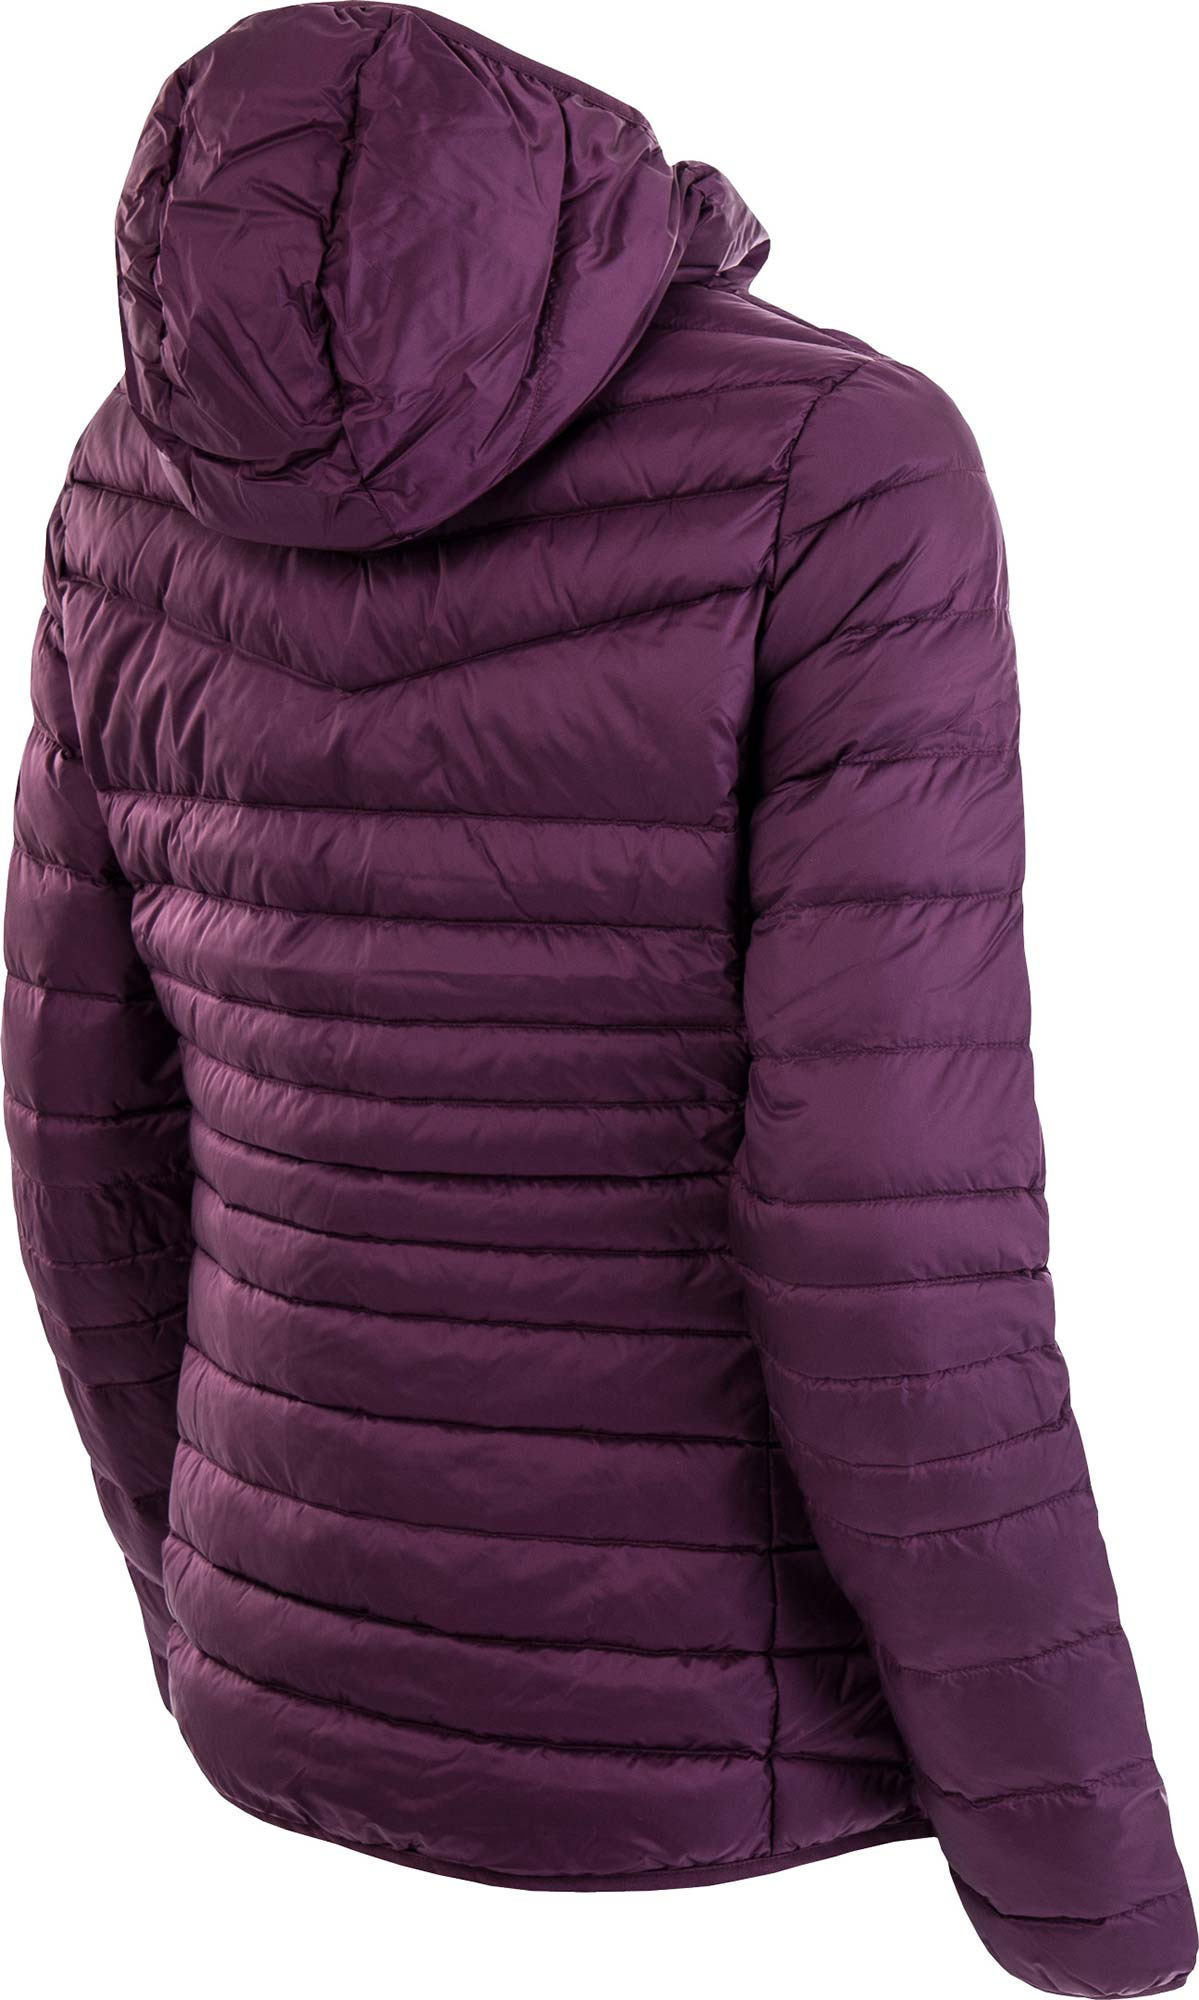 a24f1161c6ce ACTIVE 600 PACKLIGHT HOODED DOWN JACKET - Women s Winter Jacket